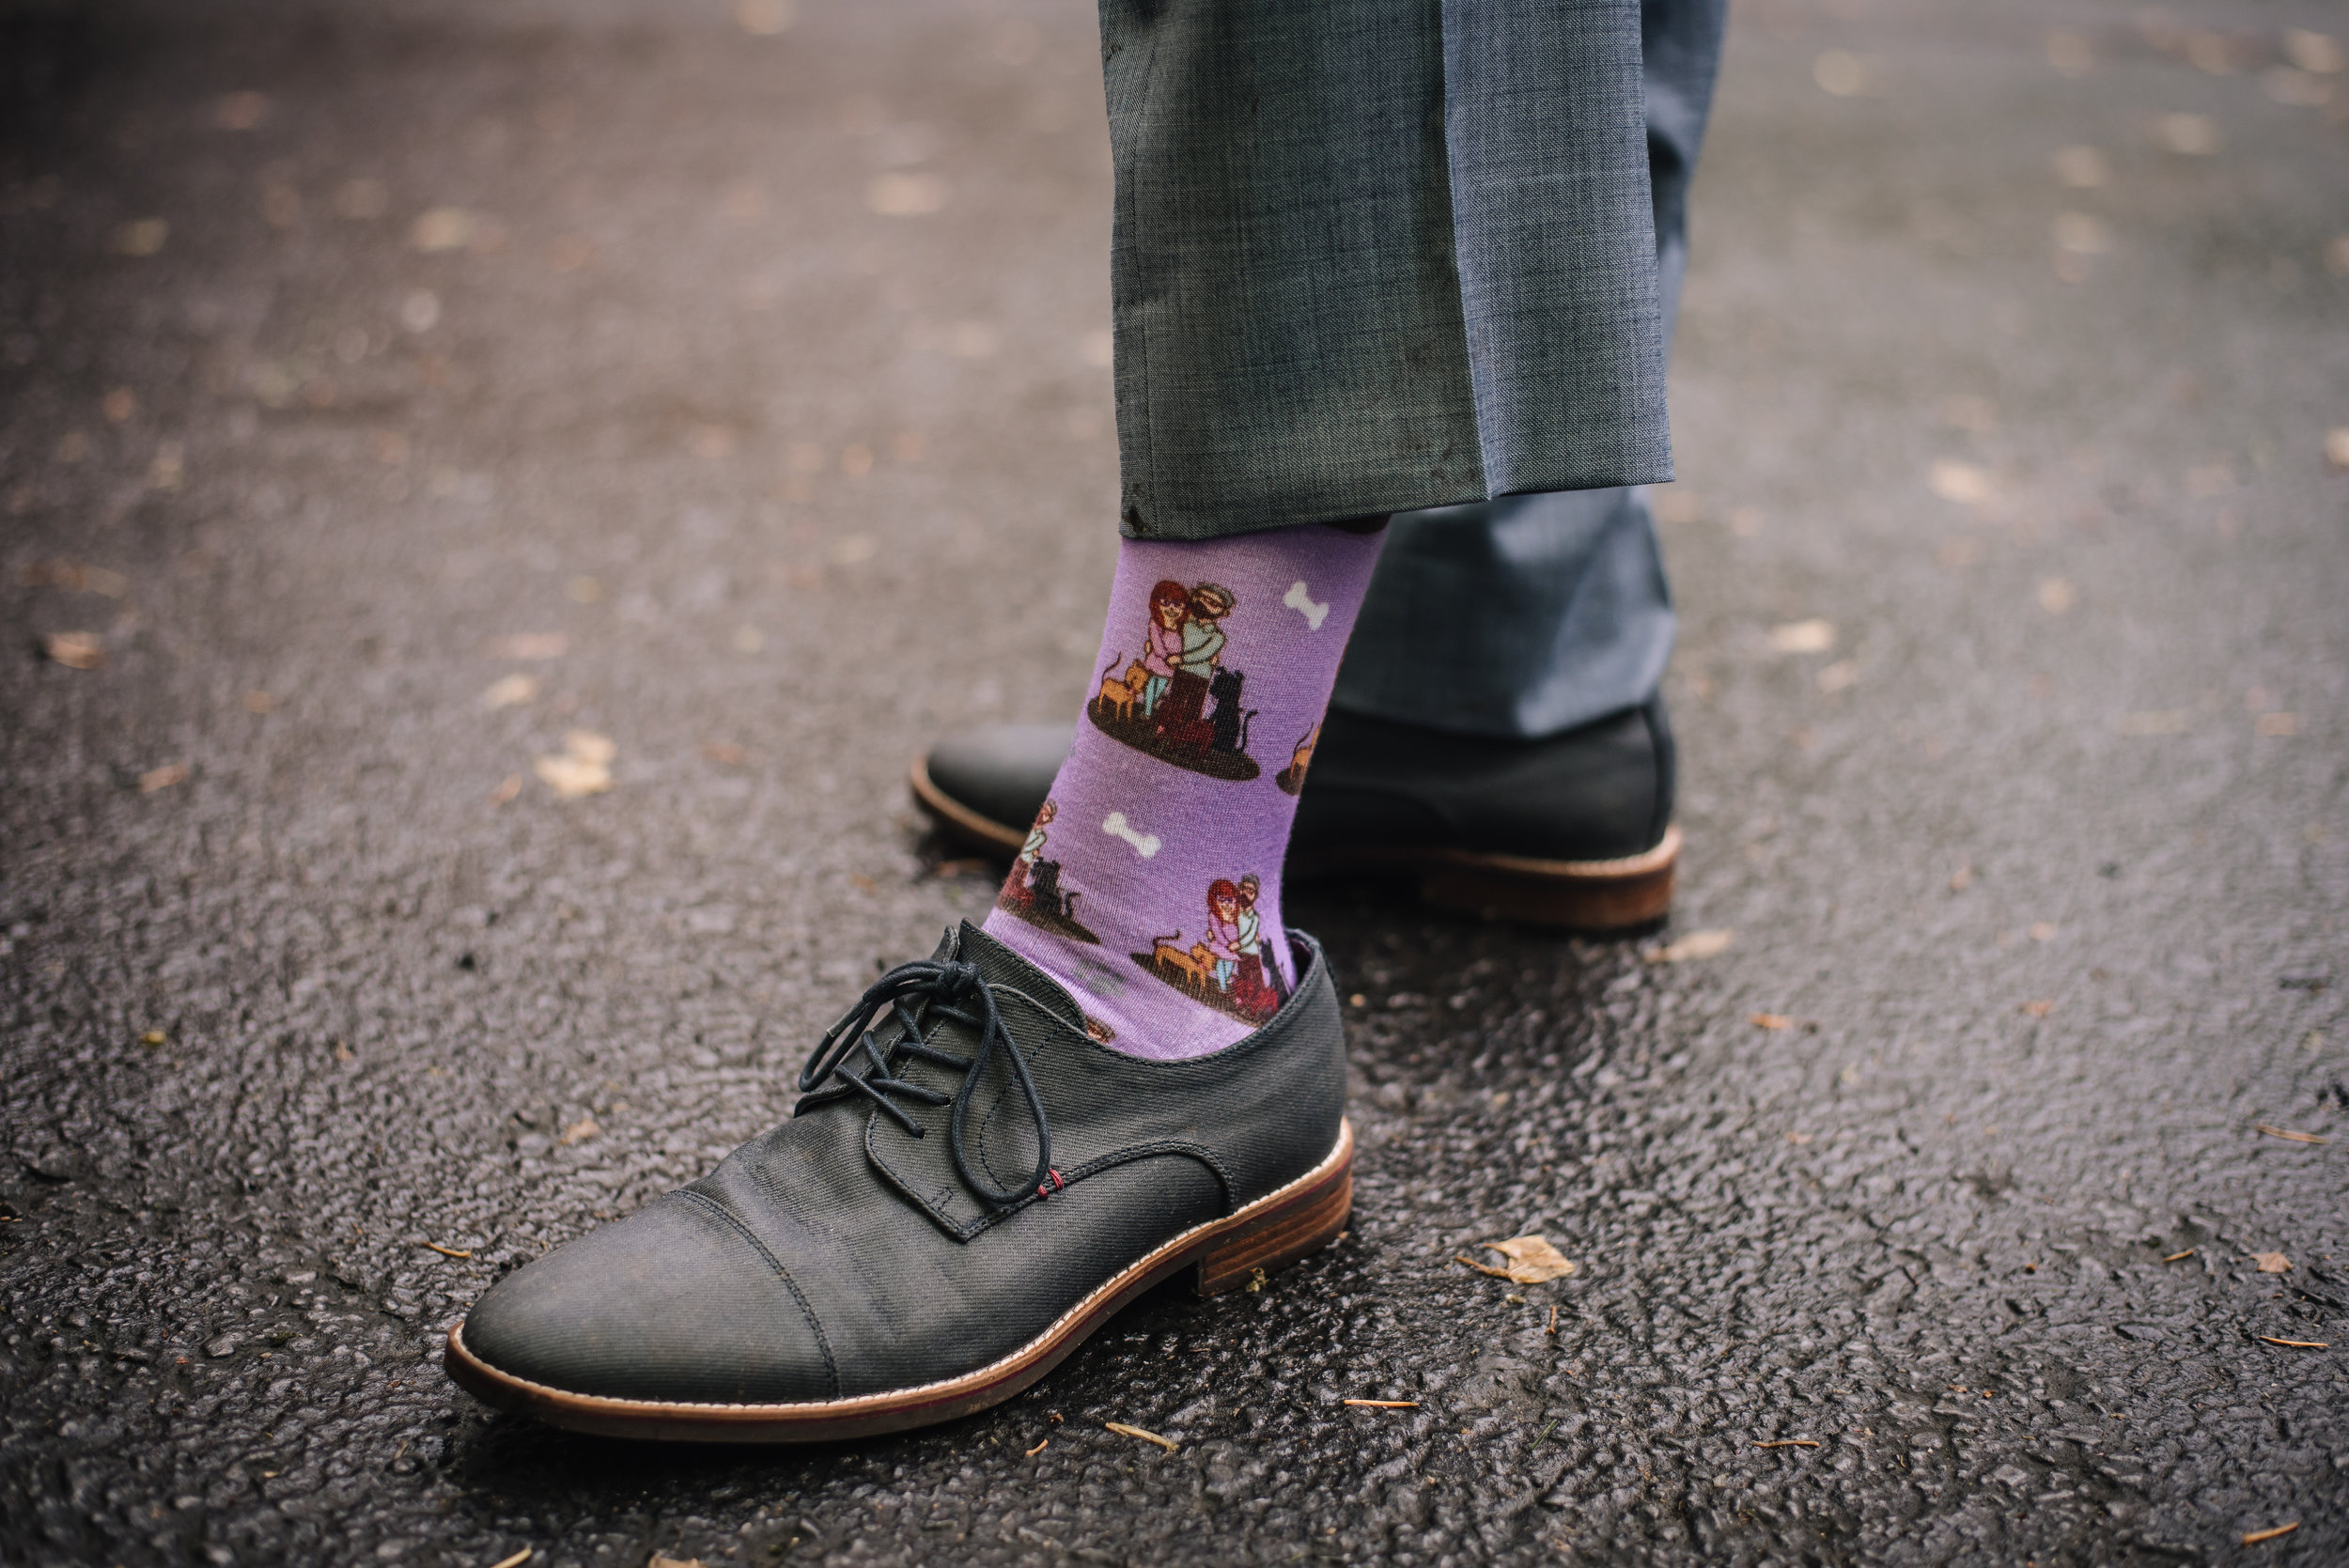 How cool are these custom socks Sarah got Christian picturing them and their 3 dogs!?